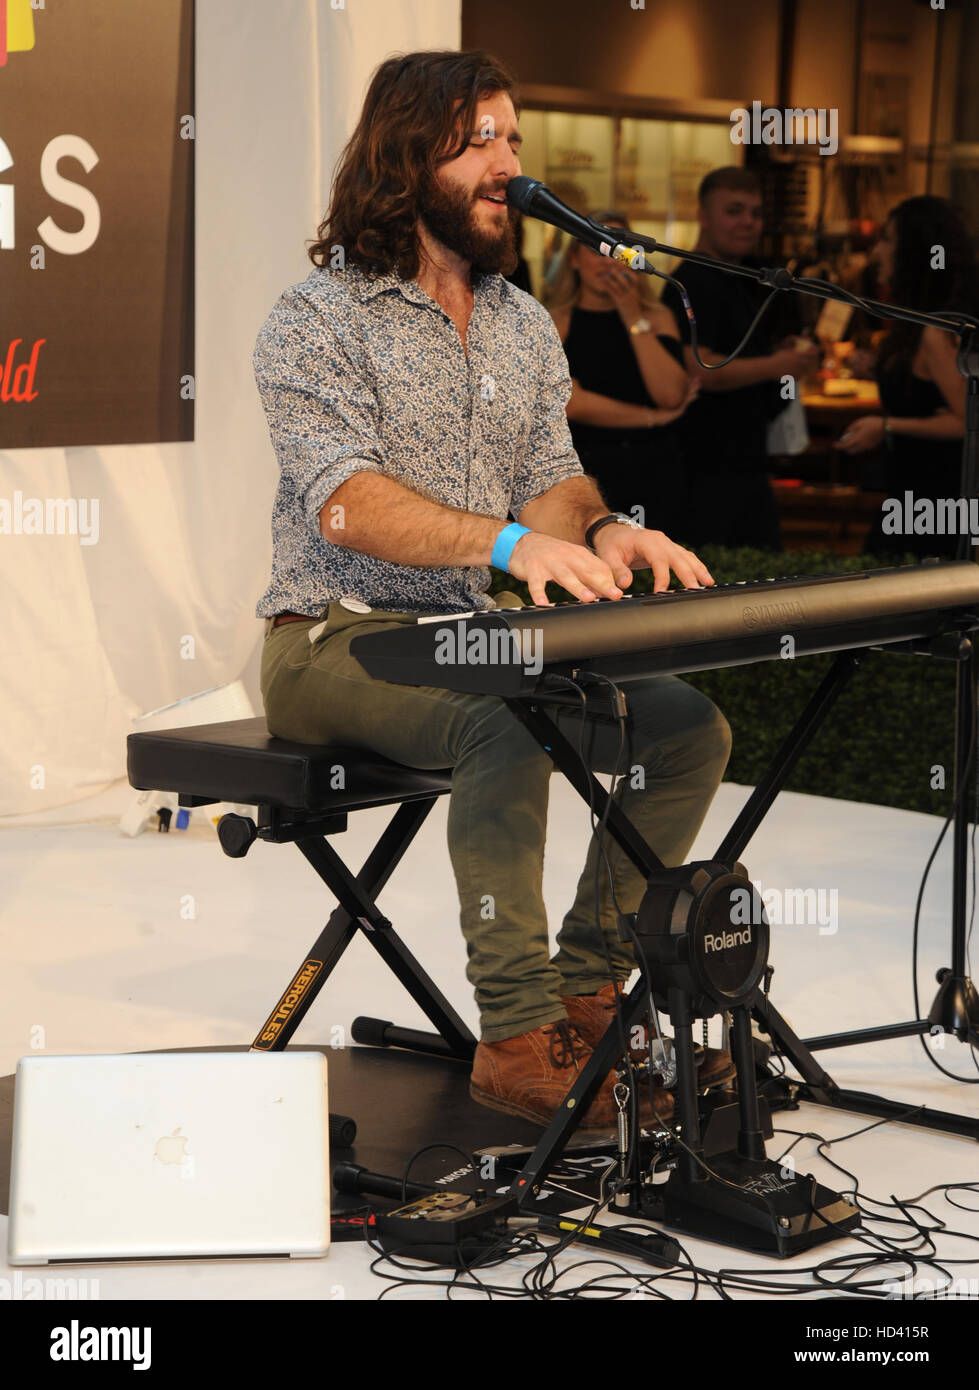 Westfield Stratford Concerts grand final avec: Alex Wheyby Où: London, Royaume-Uni Quand: 04 Oct 2016 Banque D'Images